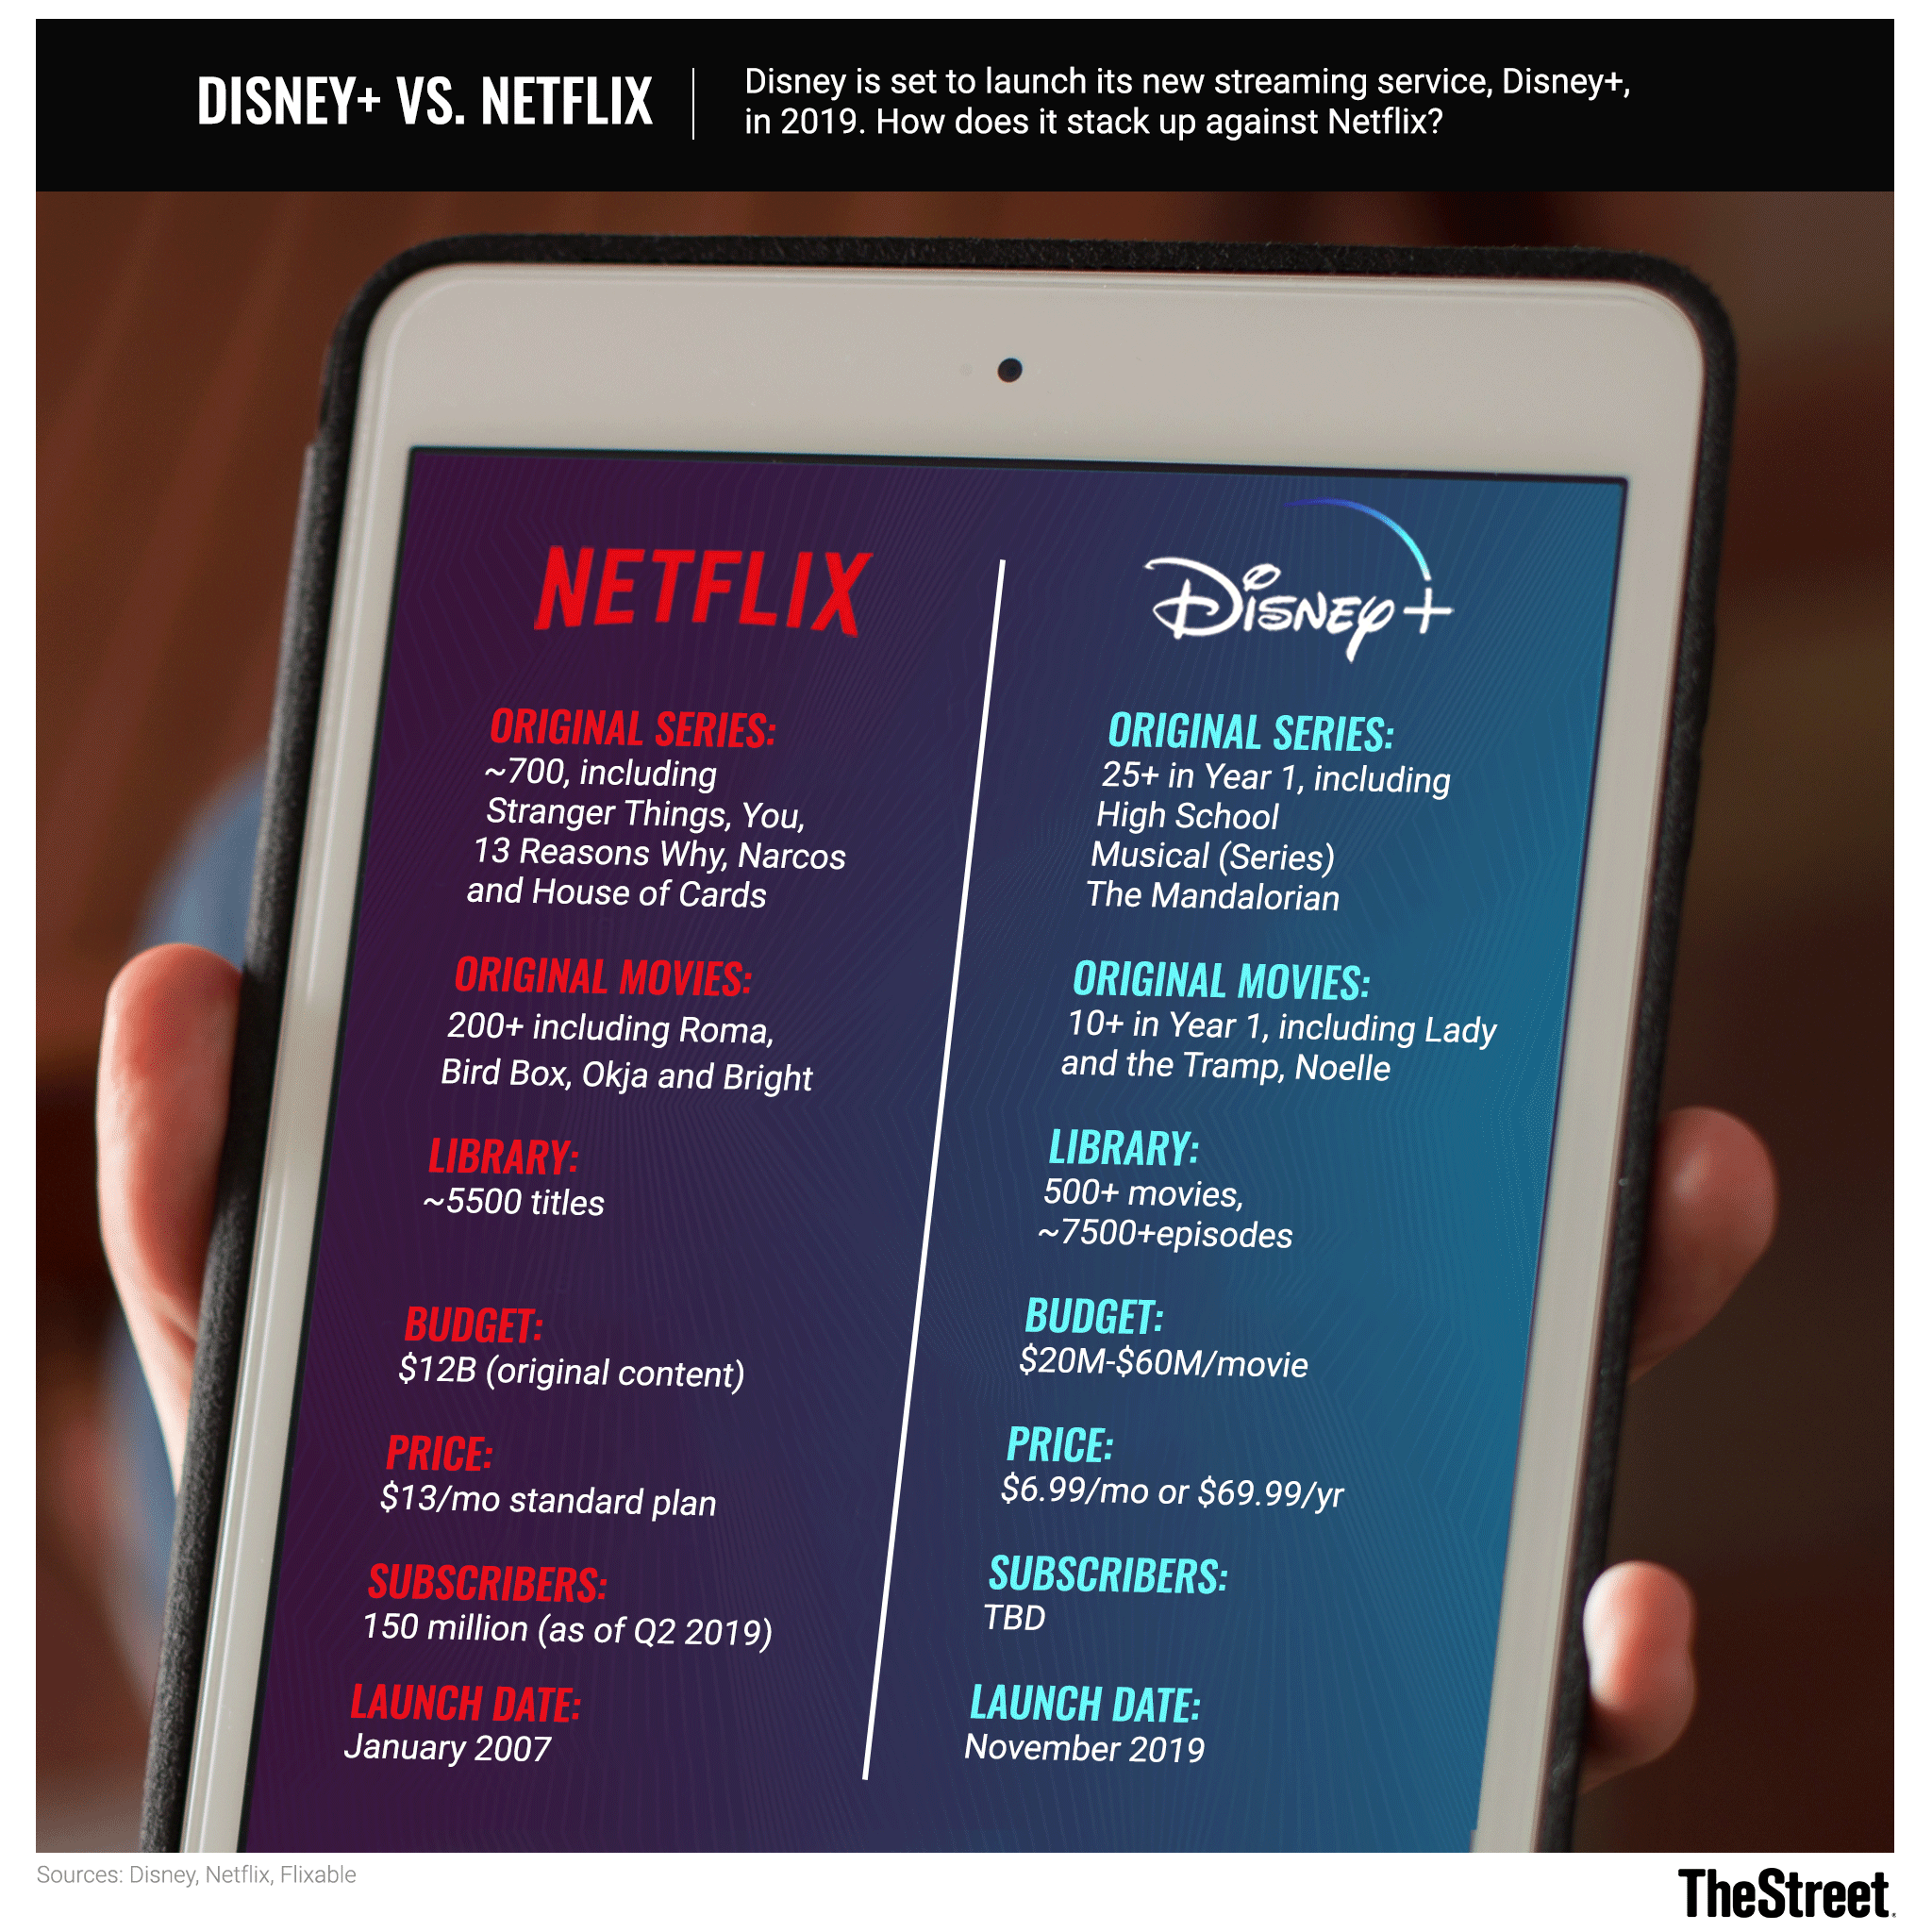 Disney Gets Closer to Taking on Netflix: What to Look for When